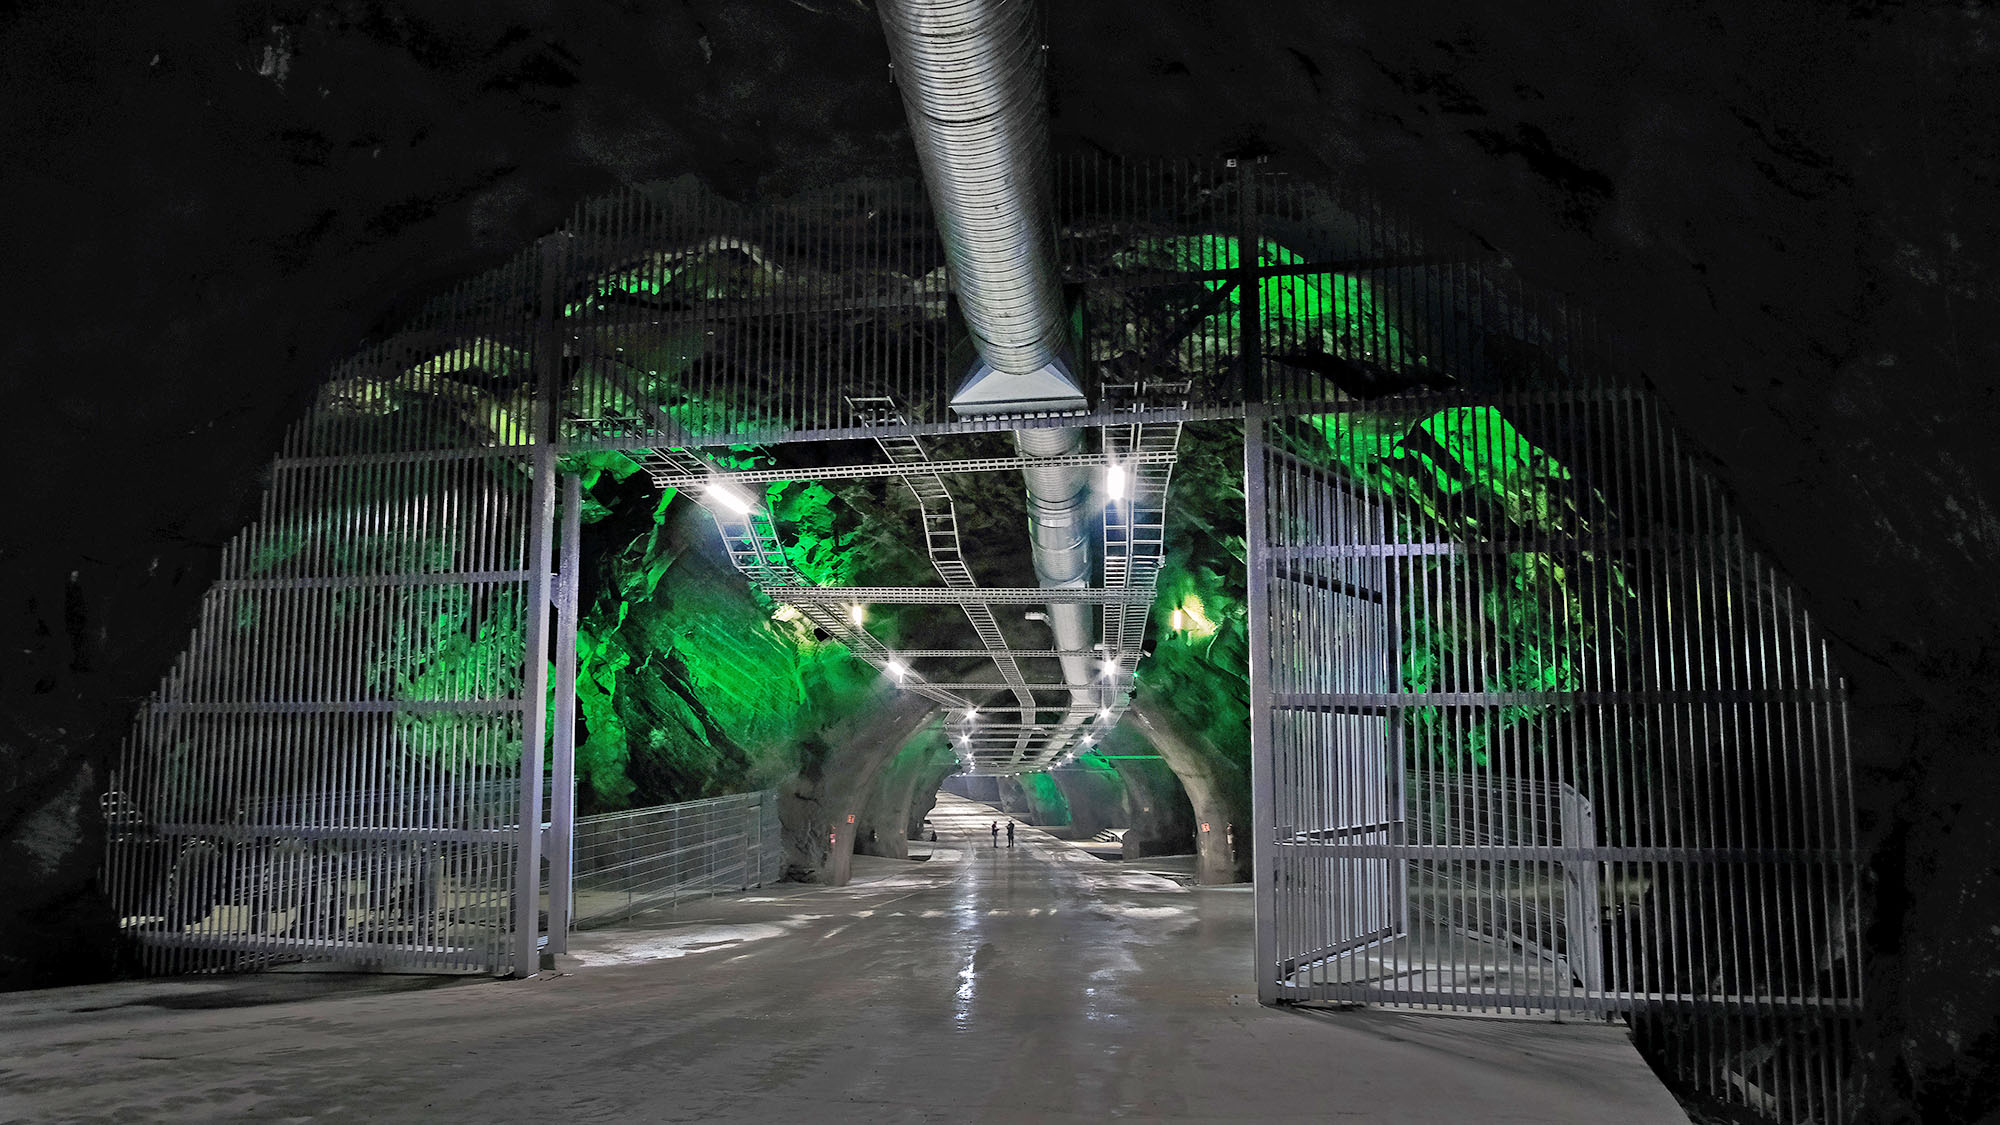 The Lefdal Mine Data Center in Norway